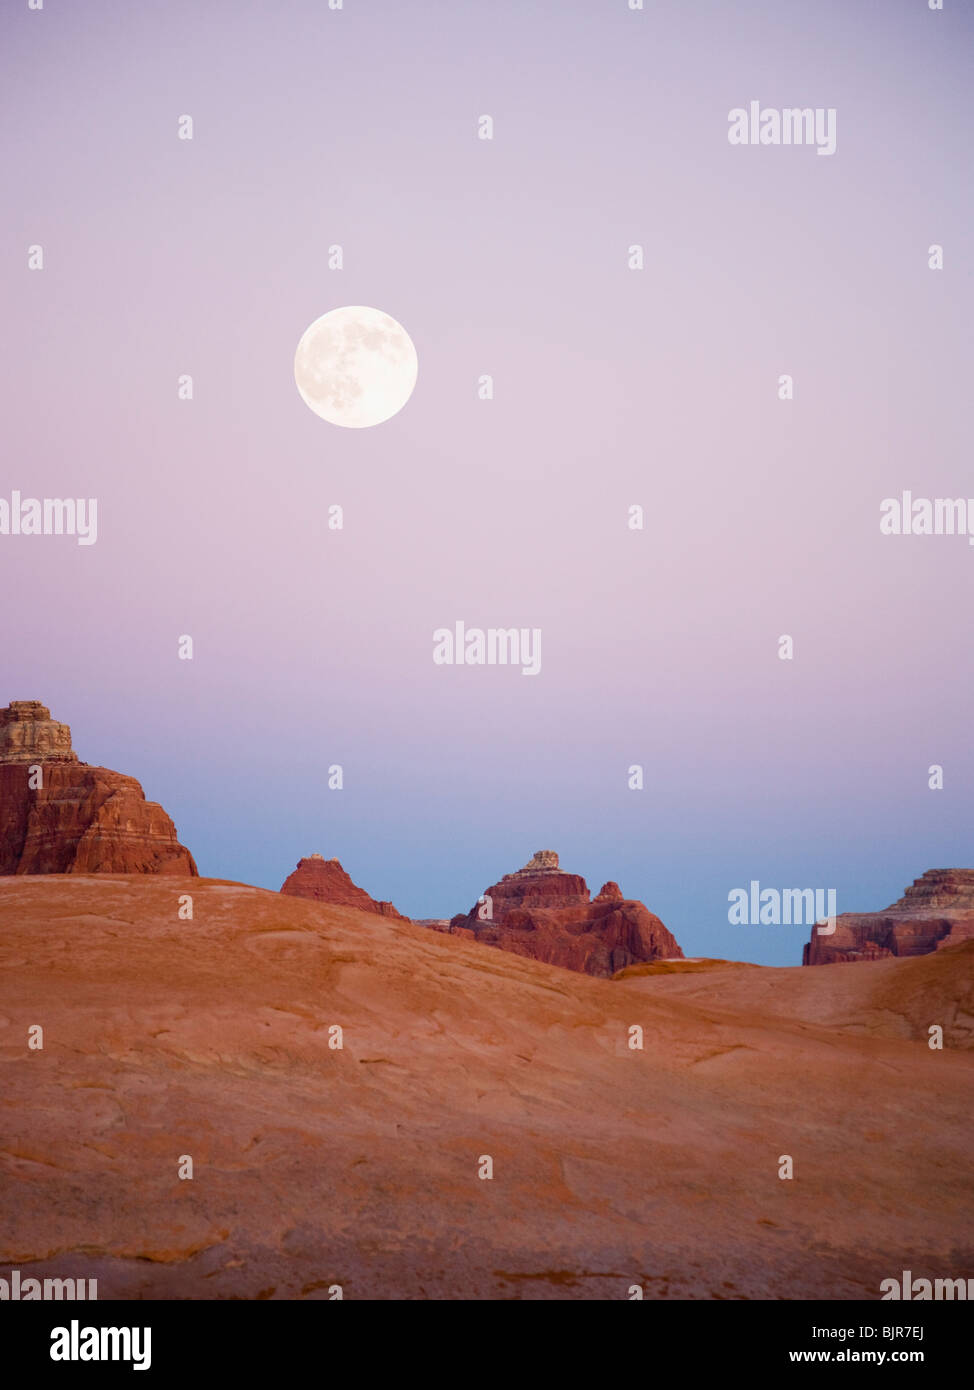 desert landscape at dusk - Stock Image